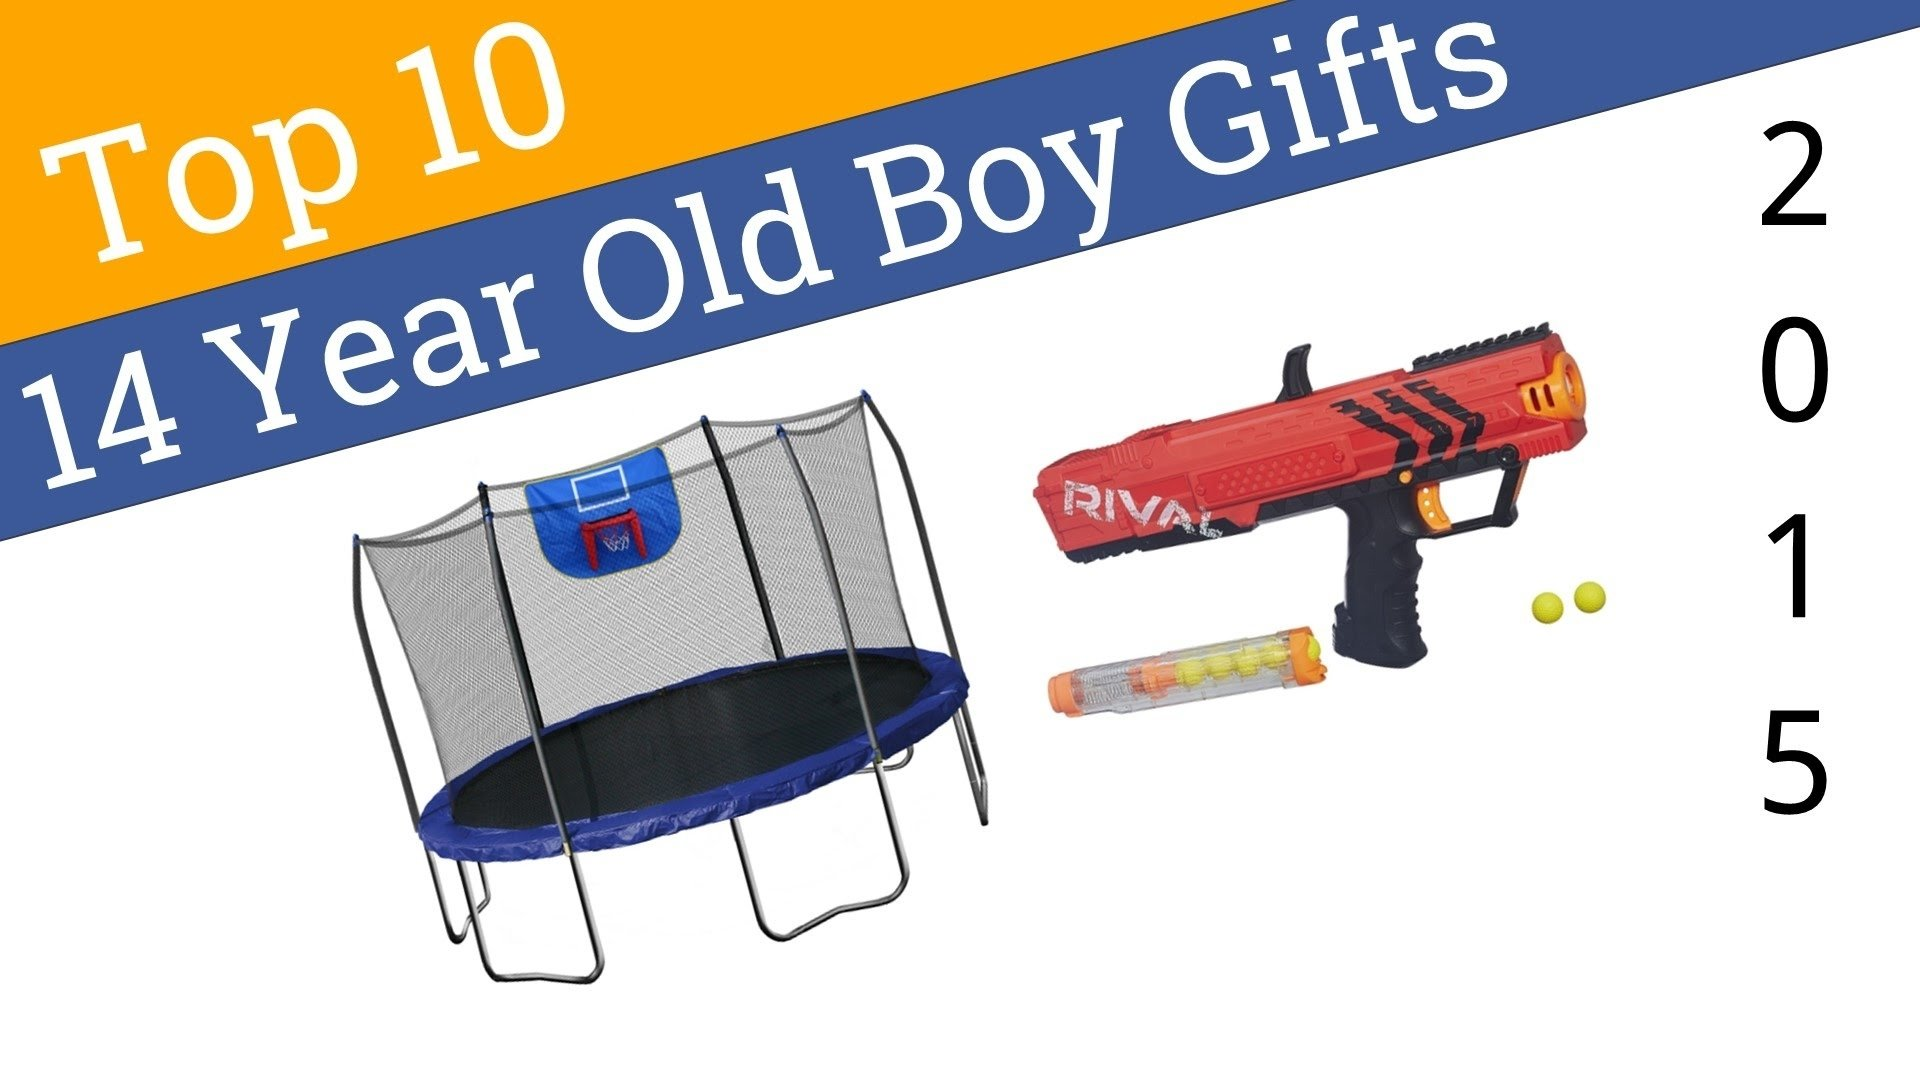 10 Nice Birthday Ideas For 14 Year Old Boy Best Gifts